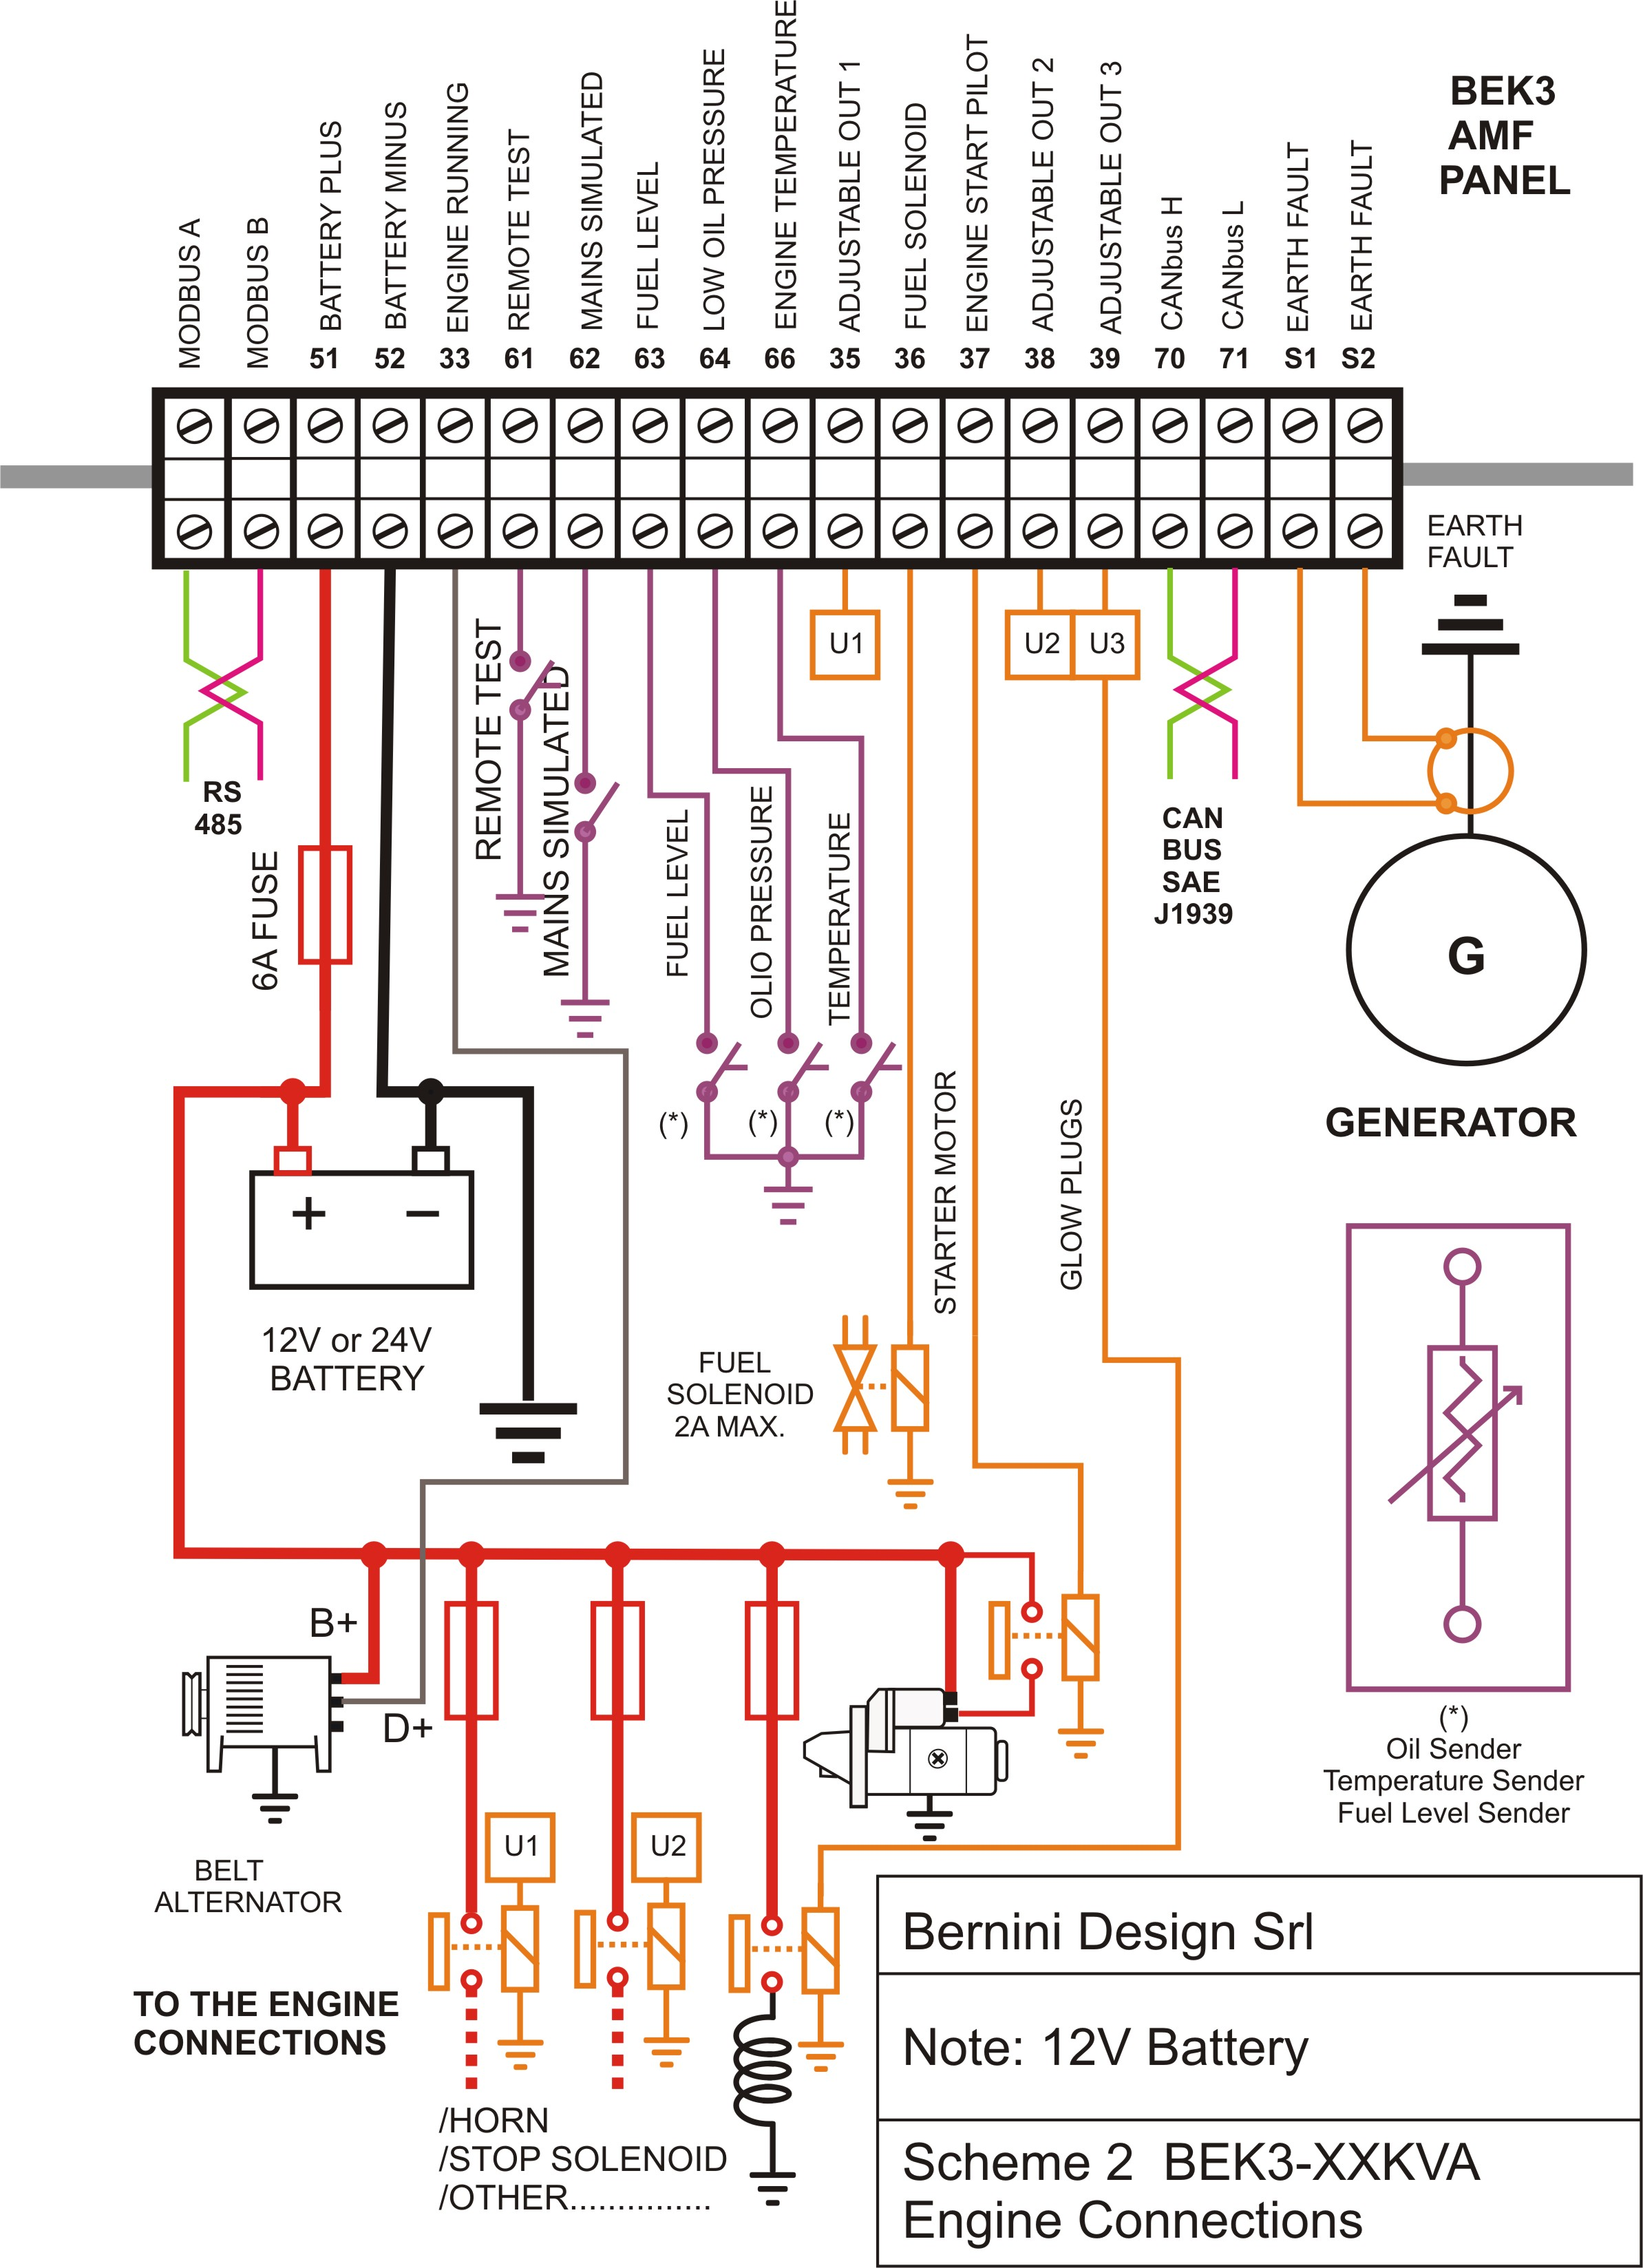 amf control panel circuit diagram pdf genset controller  amf control panel circuit diagram pdf be k3 engine connections